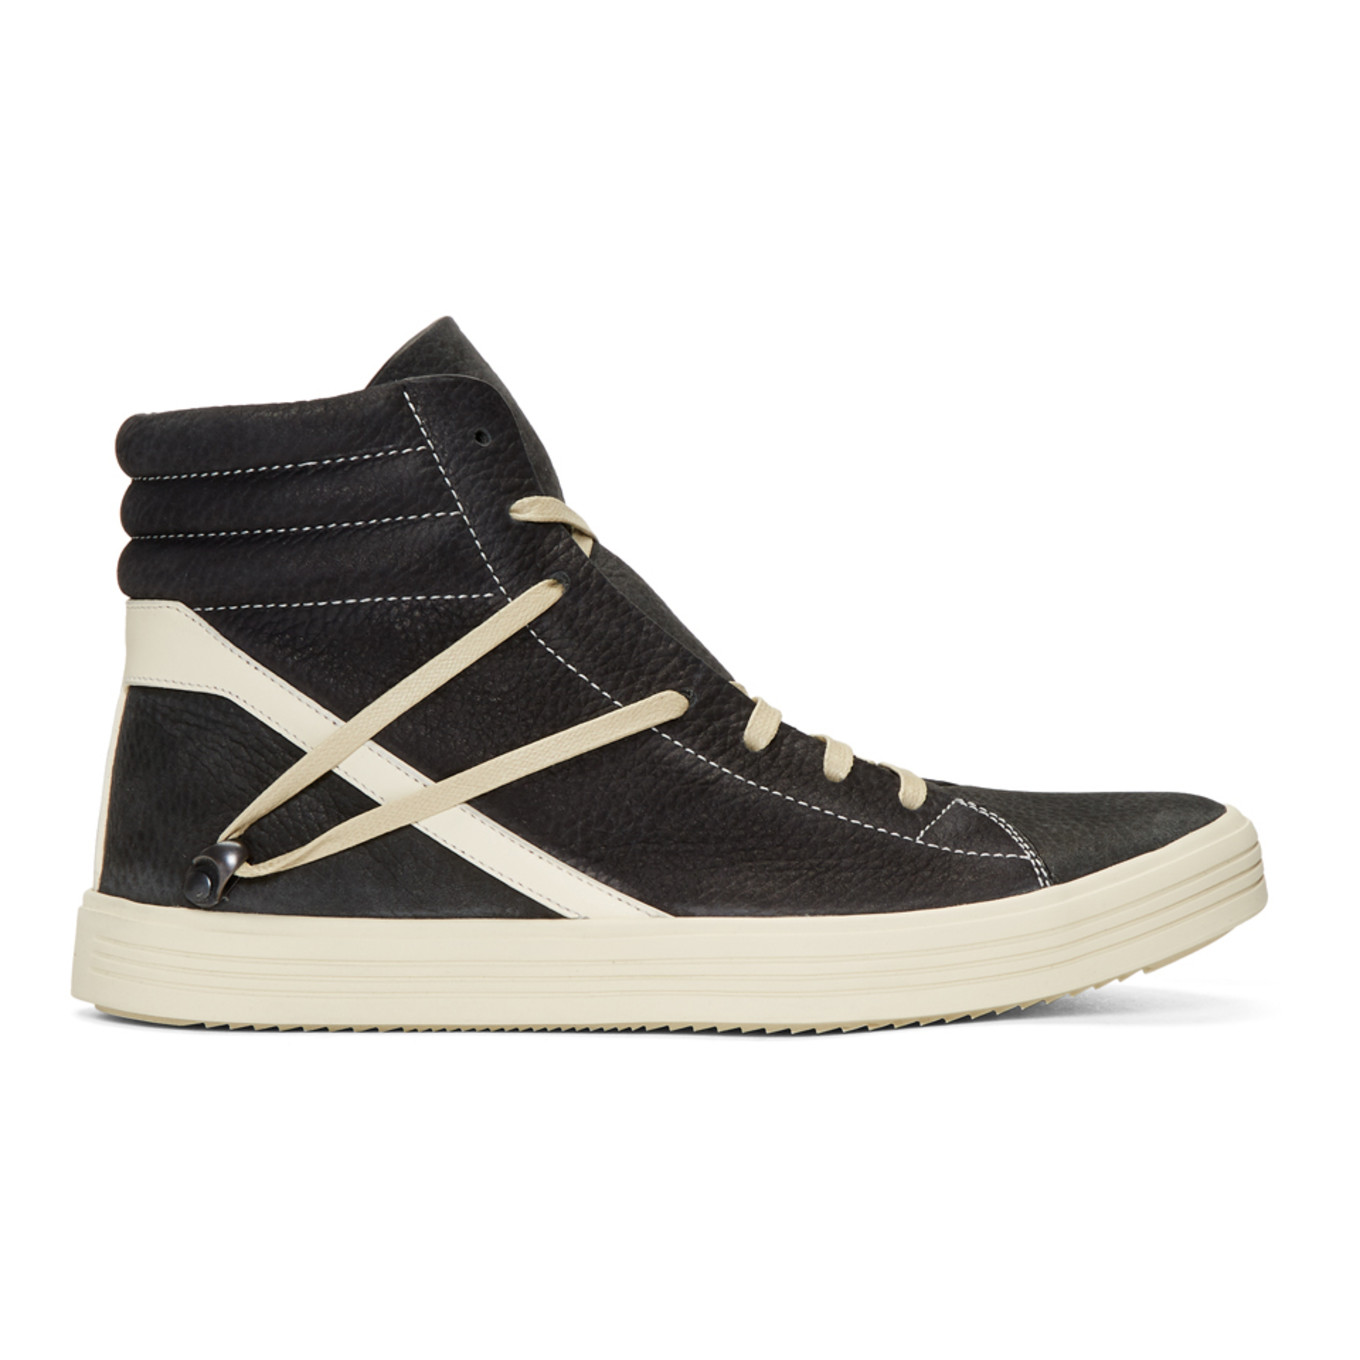 Black & Off White Geothrasher High Top Sneakers by Rick Owens